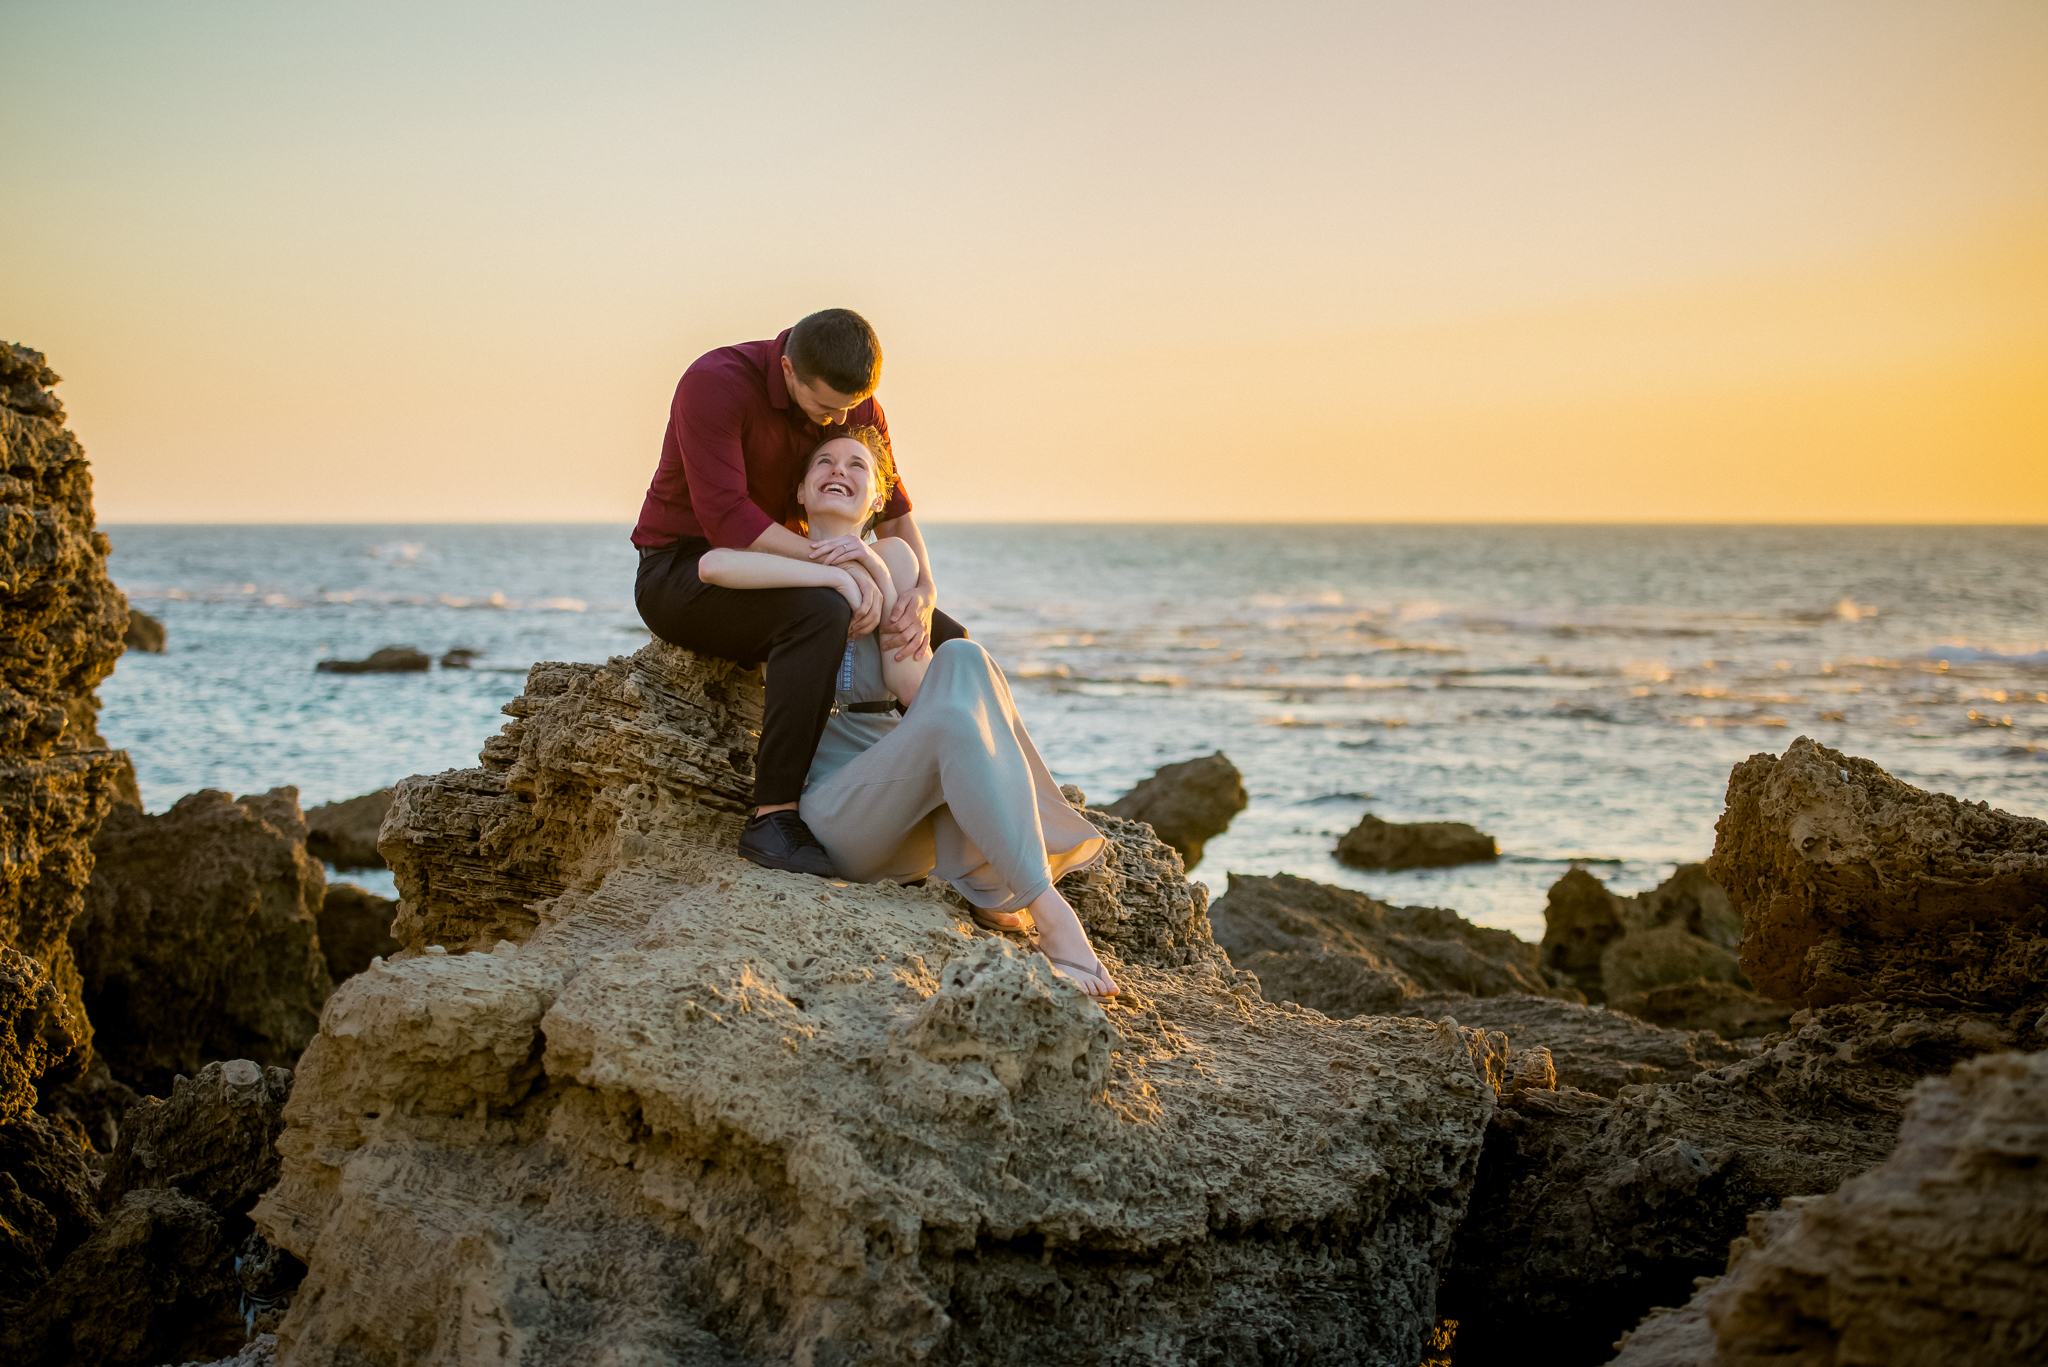 Cliffside-beach-engagement-session-hadera-israel-kate-giryes-photography-9349.jpg